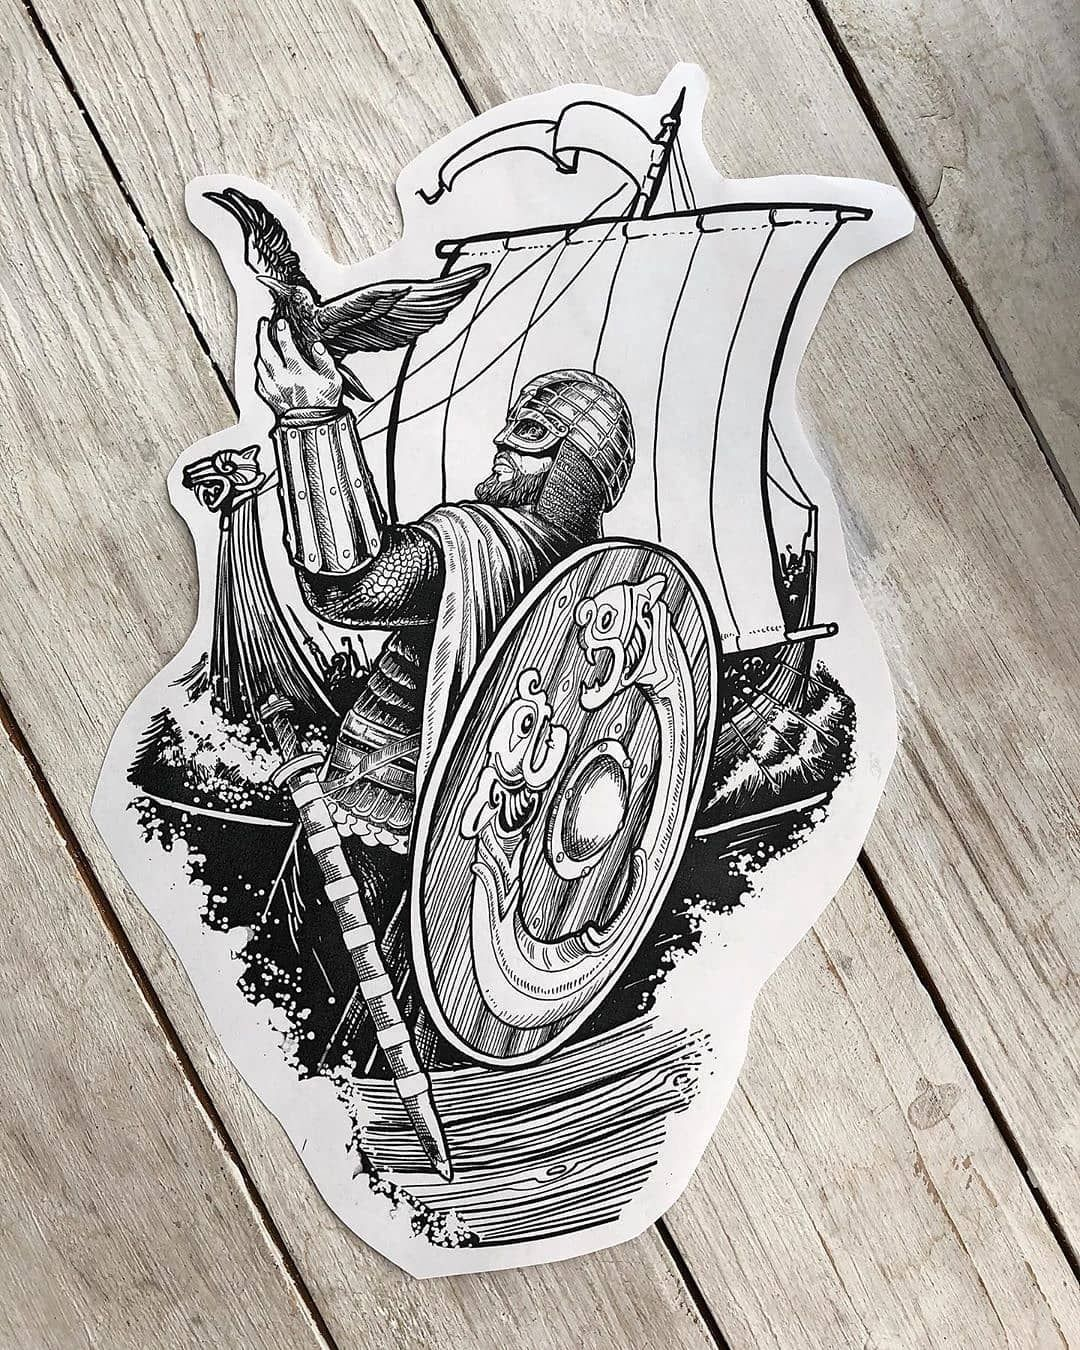 Art by👉 trn_tattoo New sketch 🖊 Free for tattooing